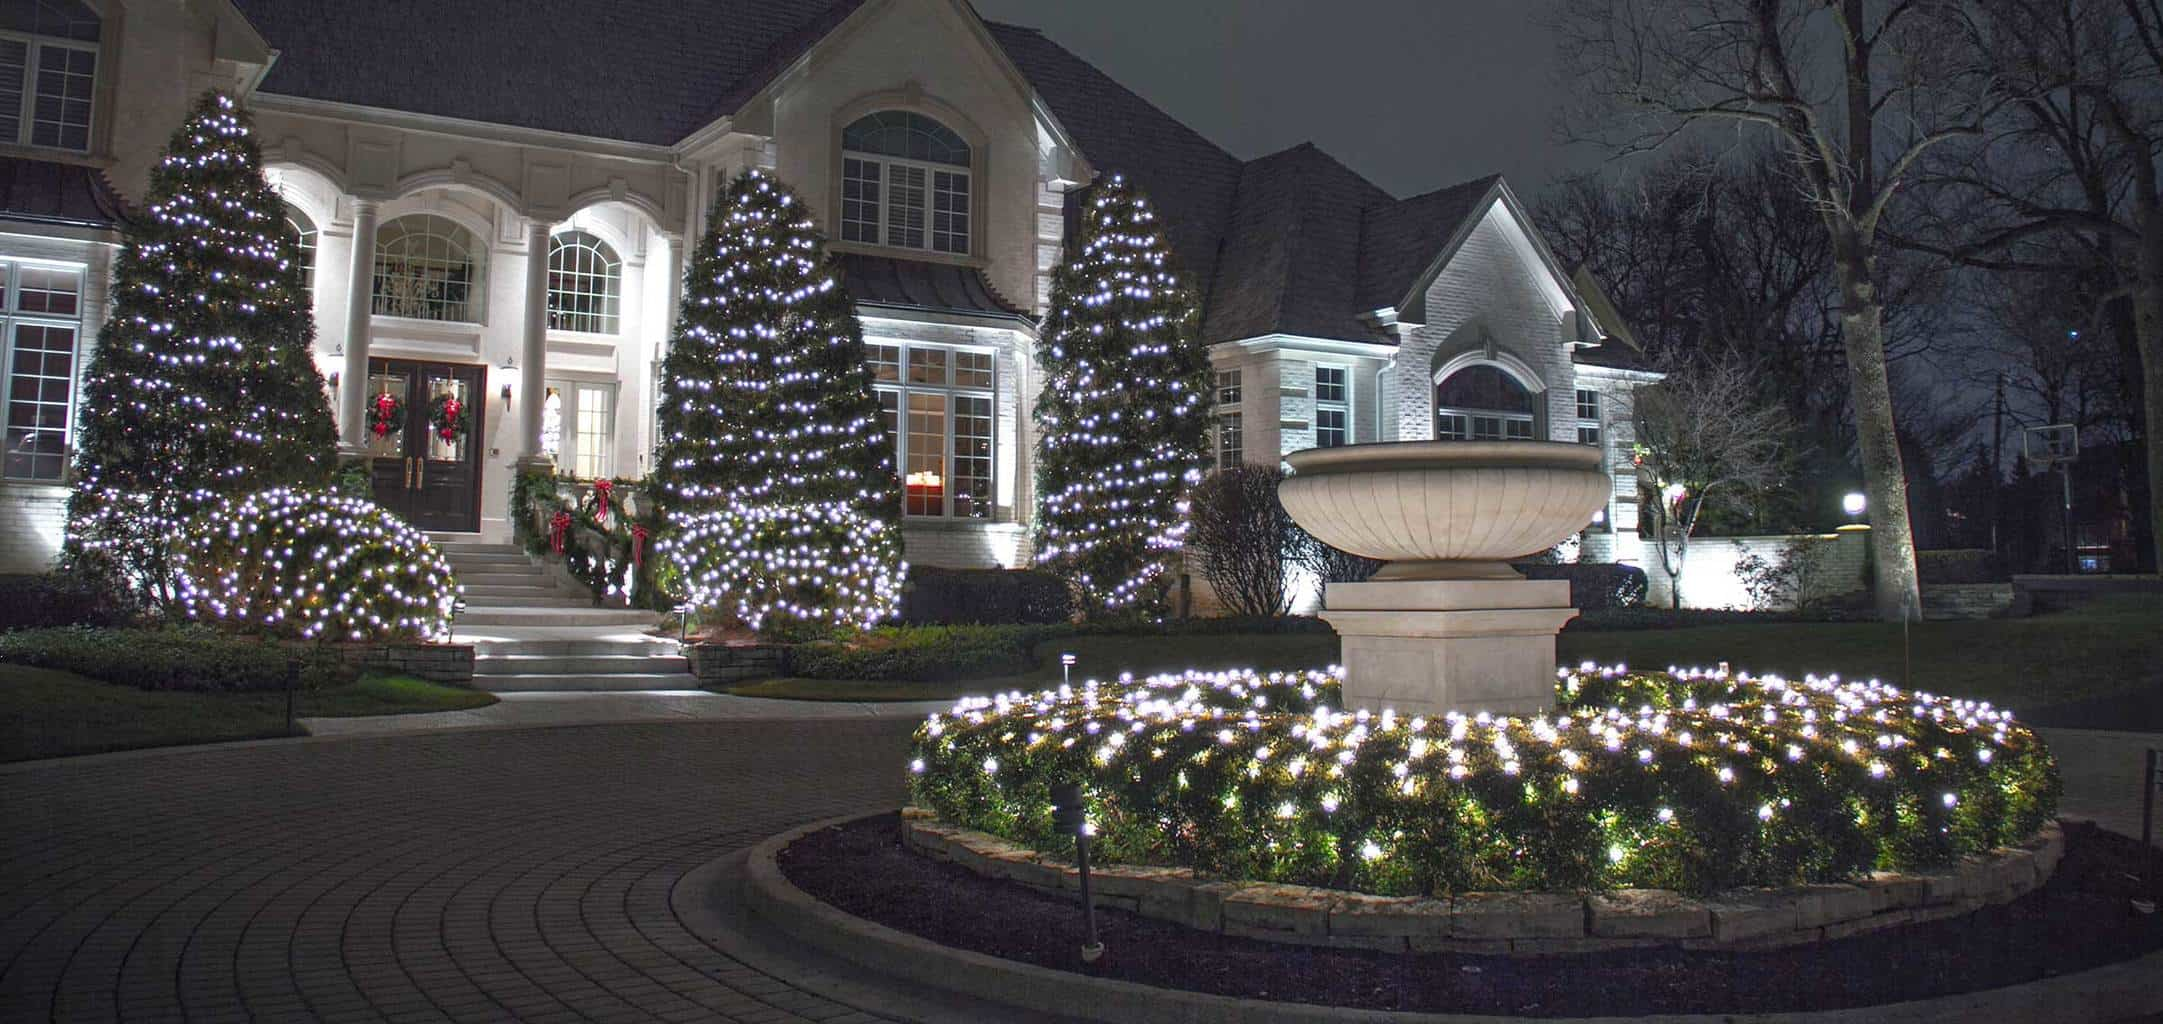 Christmas Light InstallationChristmas Light Installation  Get a Free Estimate Today